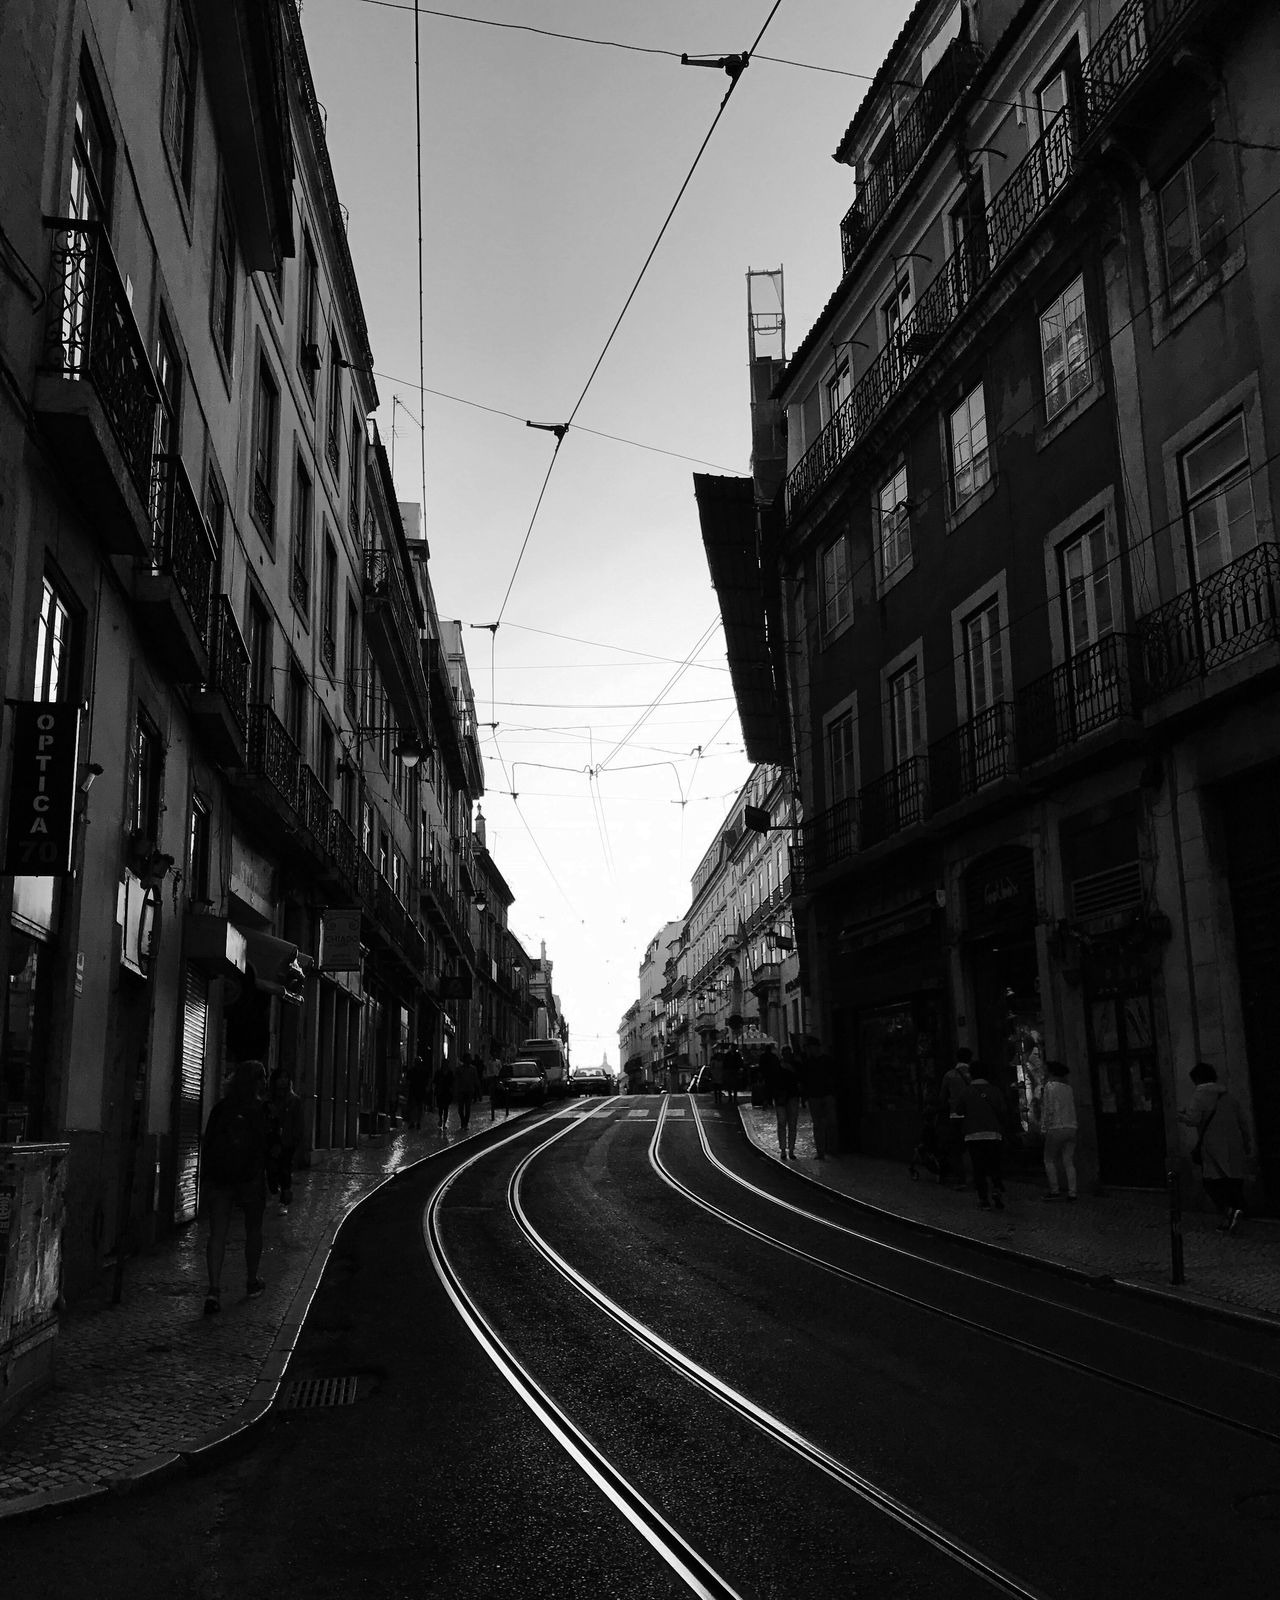 Railroad Track No People Black And White Monochrome Street Photography Bw_collection Blackandwhite Lisbon Outdoors City